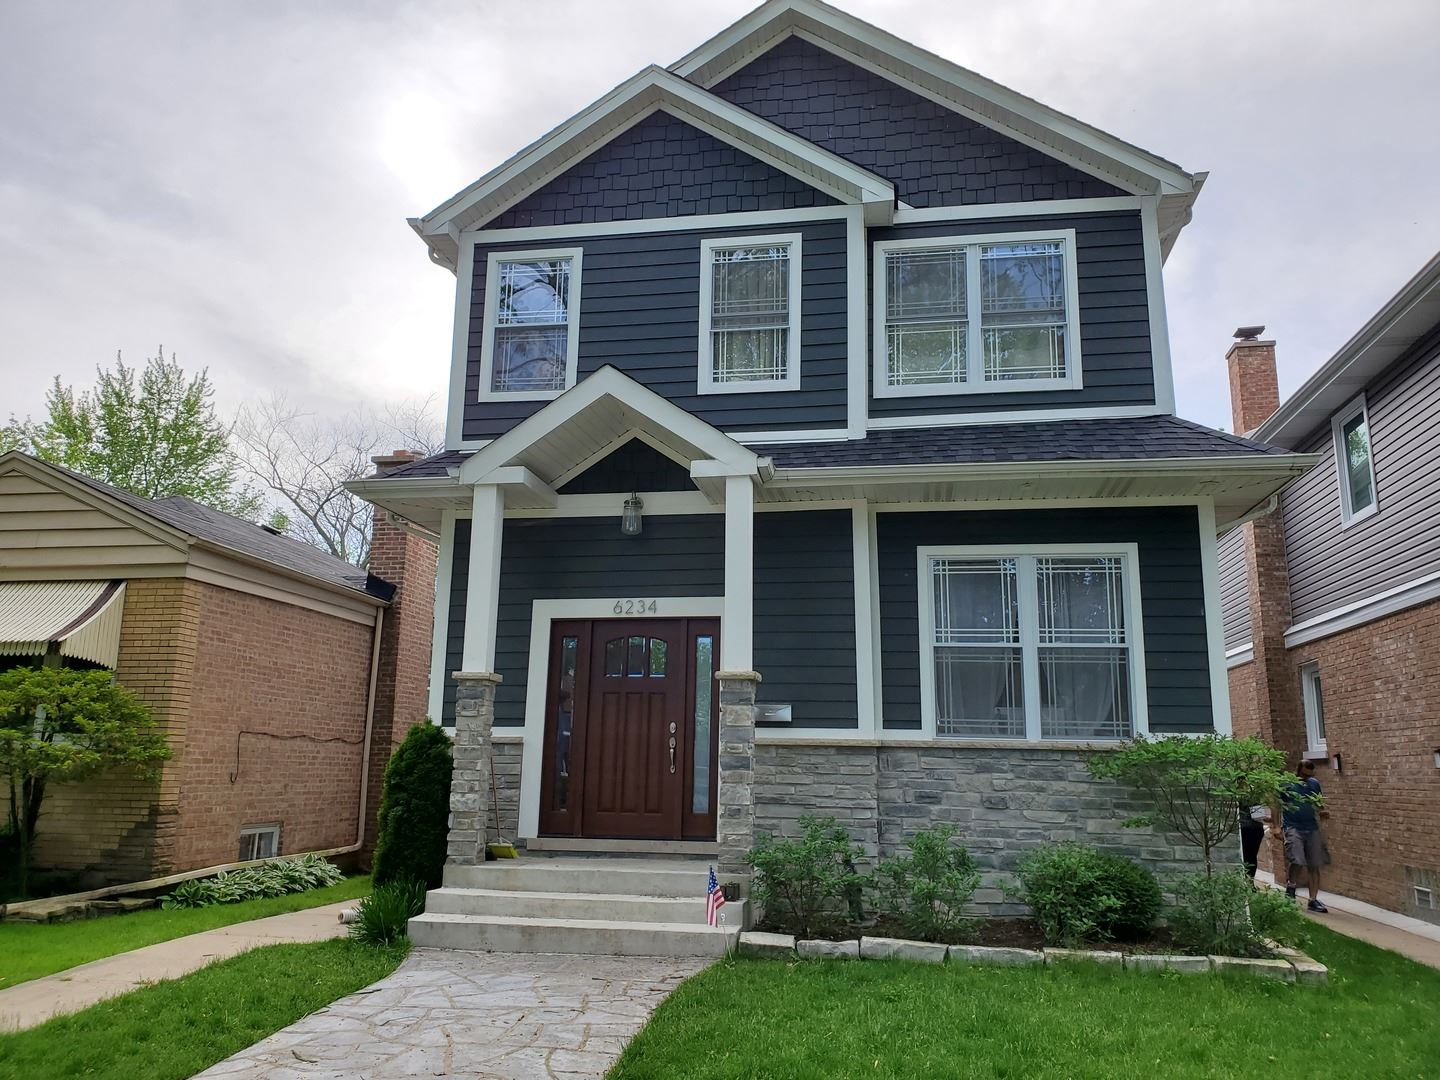 6234 N Lowell Avenue, Chicago, IL 60646 - #: 10725638